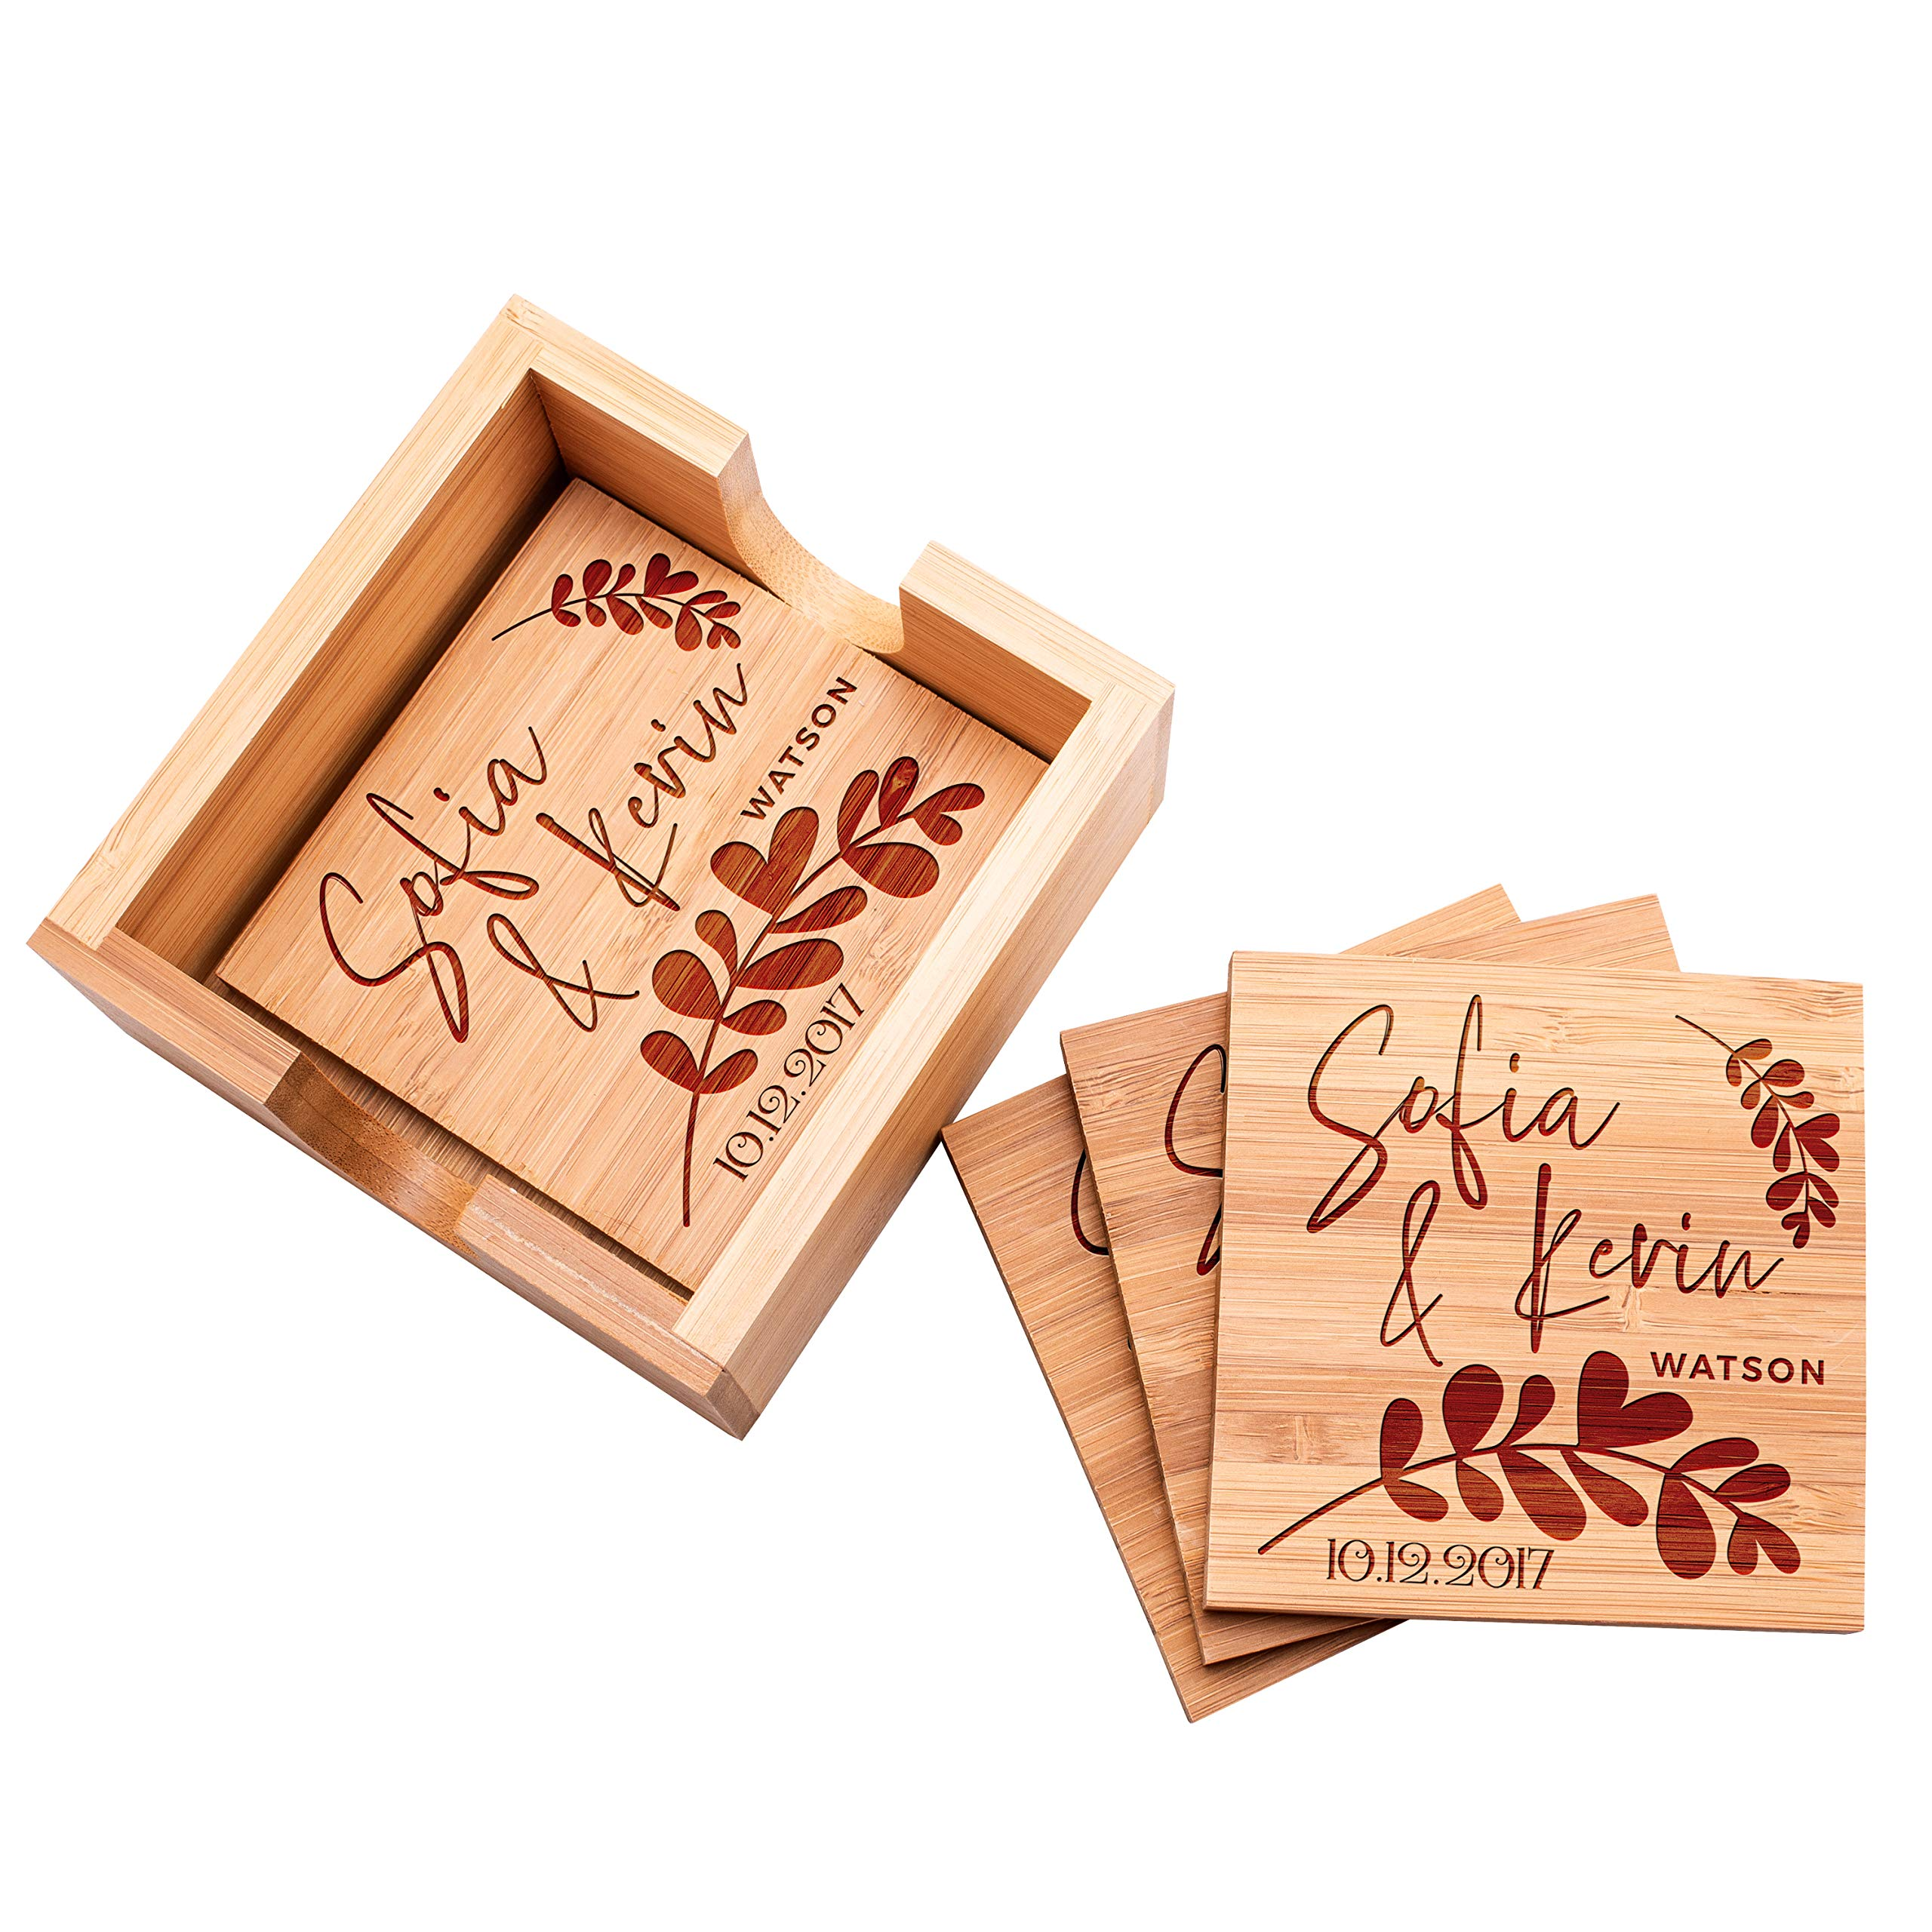 Be Burgundy - Personalized Name Coaster with Holder - 4 pcs Bamboo 4'' x 4'' Square Personalized Coasters - FREE ENGRAVING - Bamboo Coasters for Drinks with Holders - 2